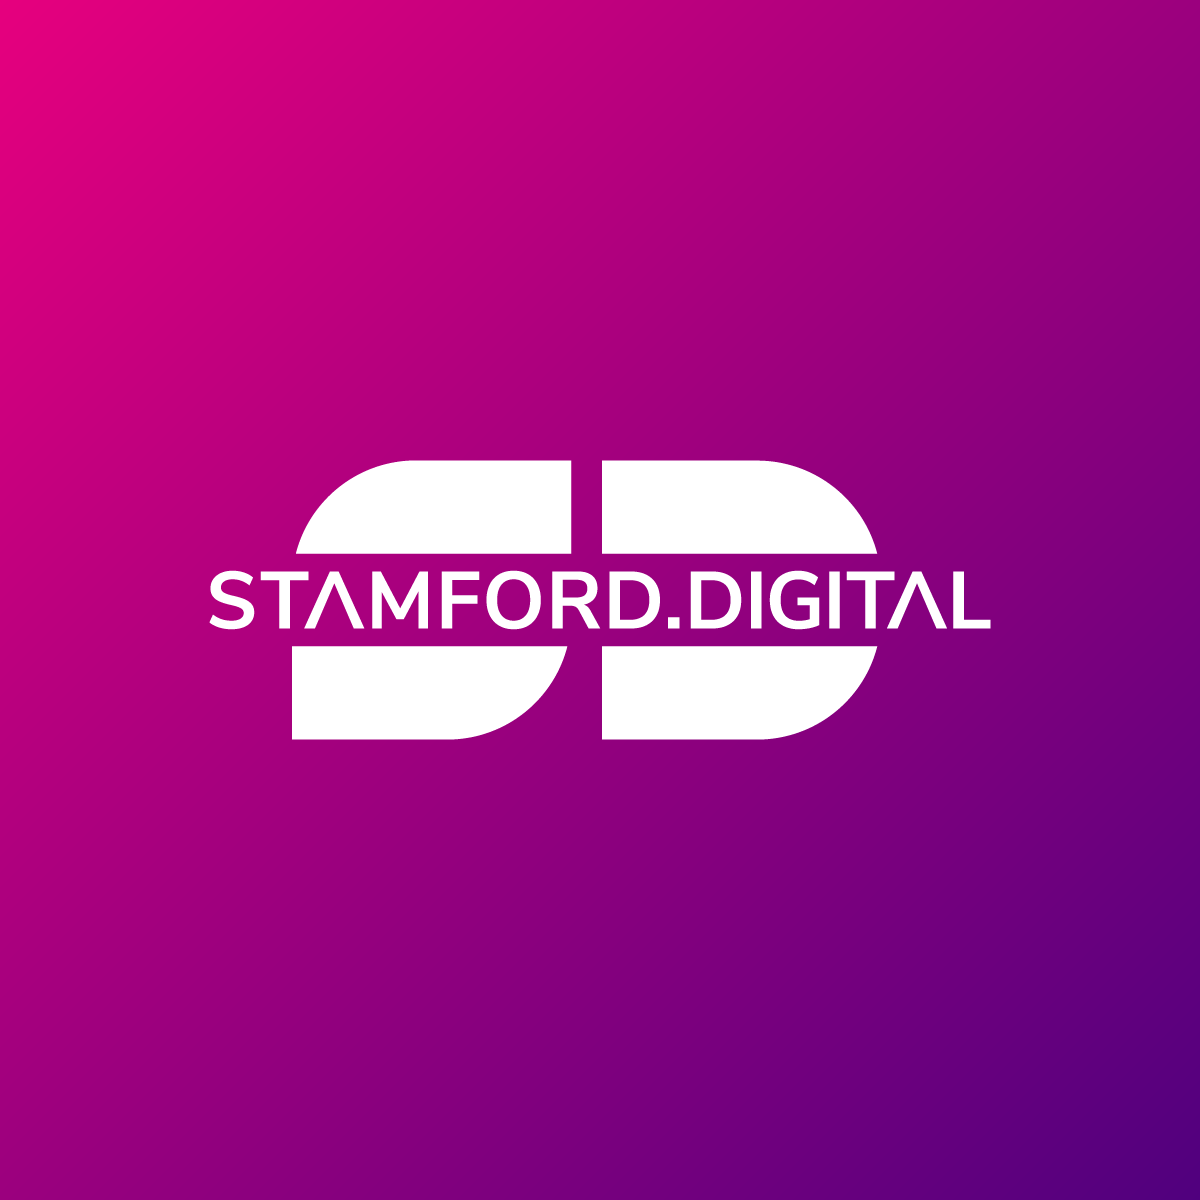 Brand design for Stamford Digital